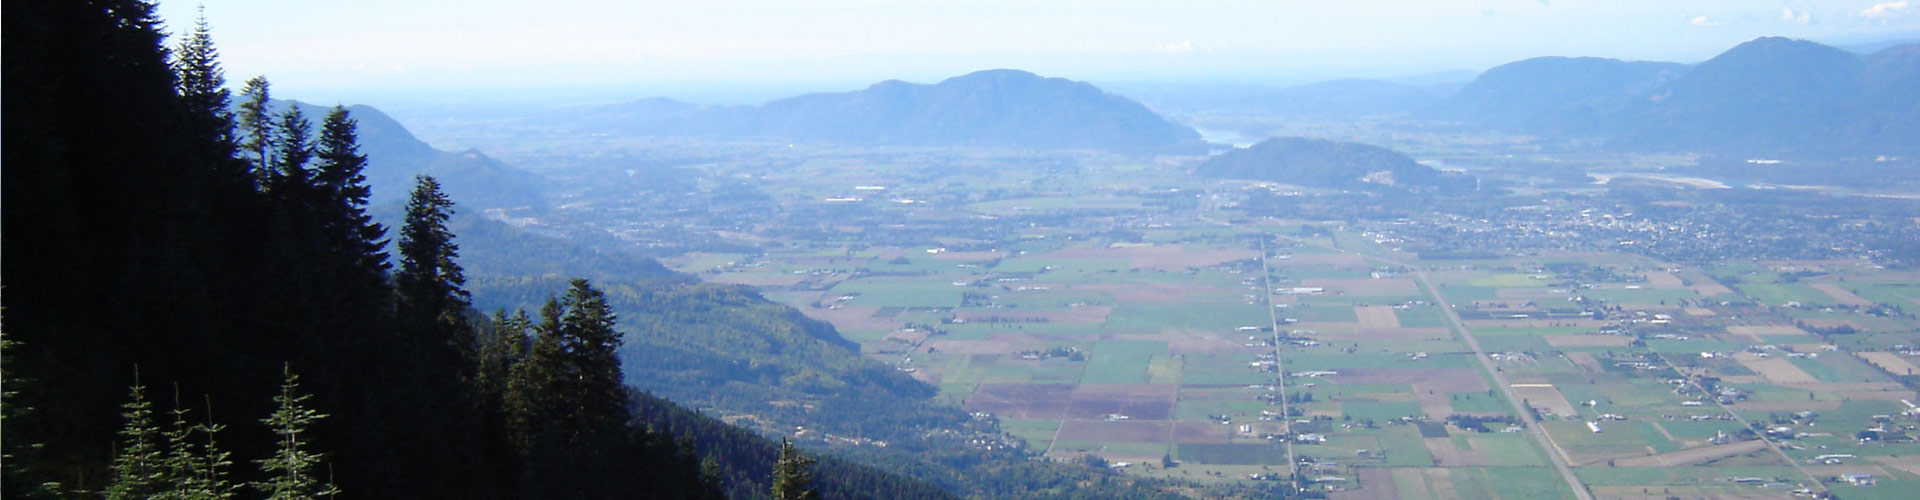 Chilliwack_slider